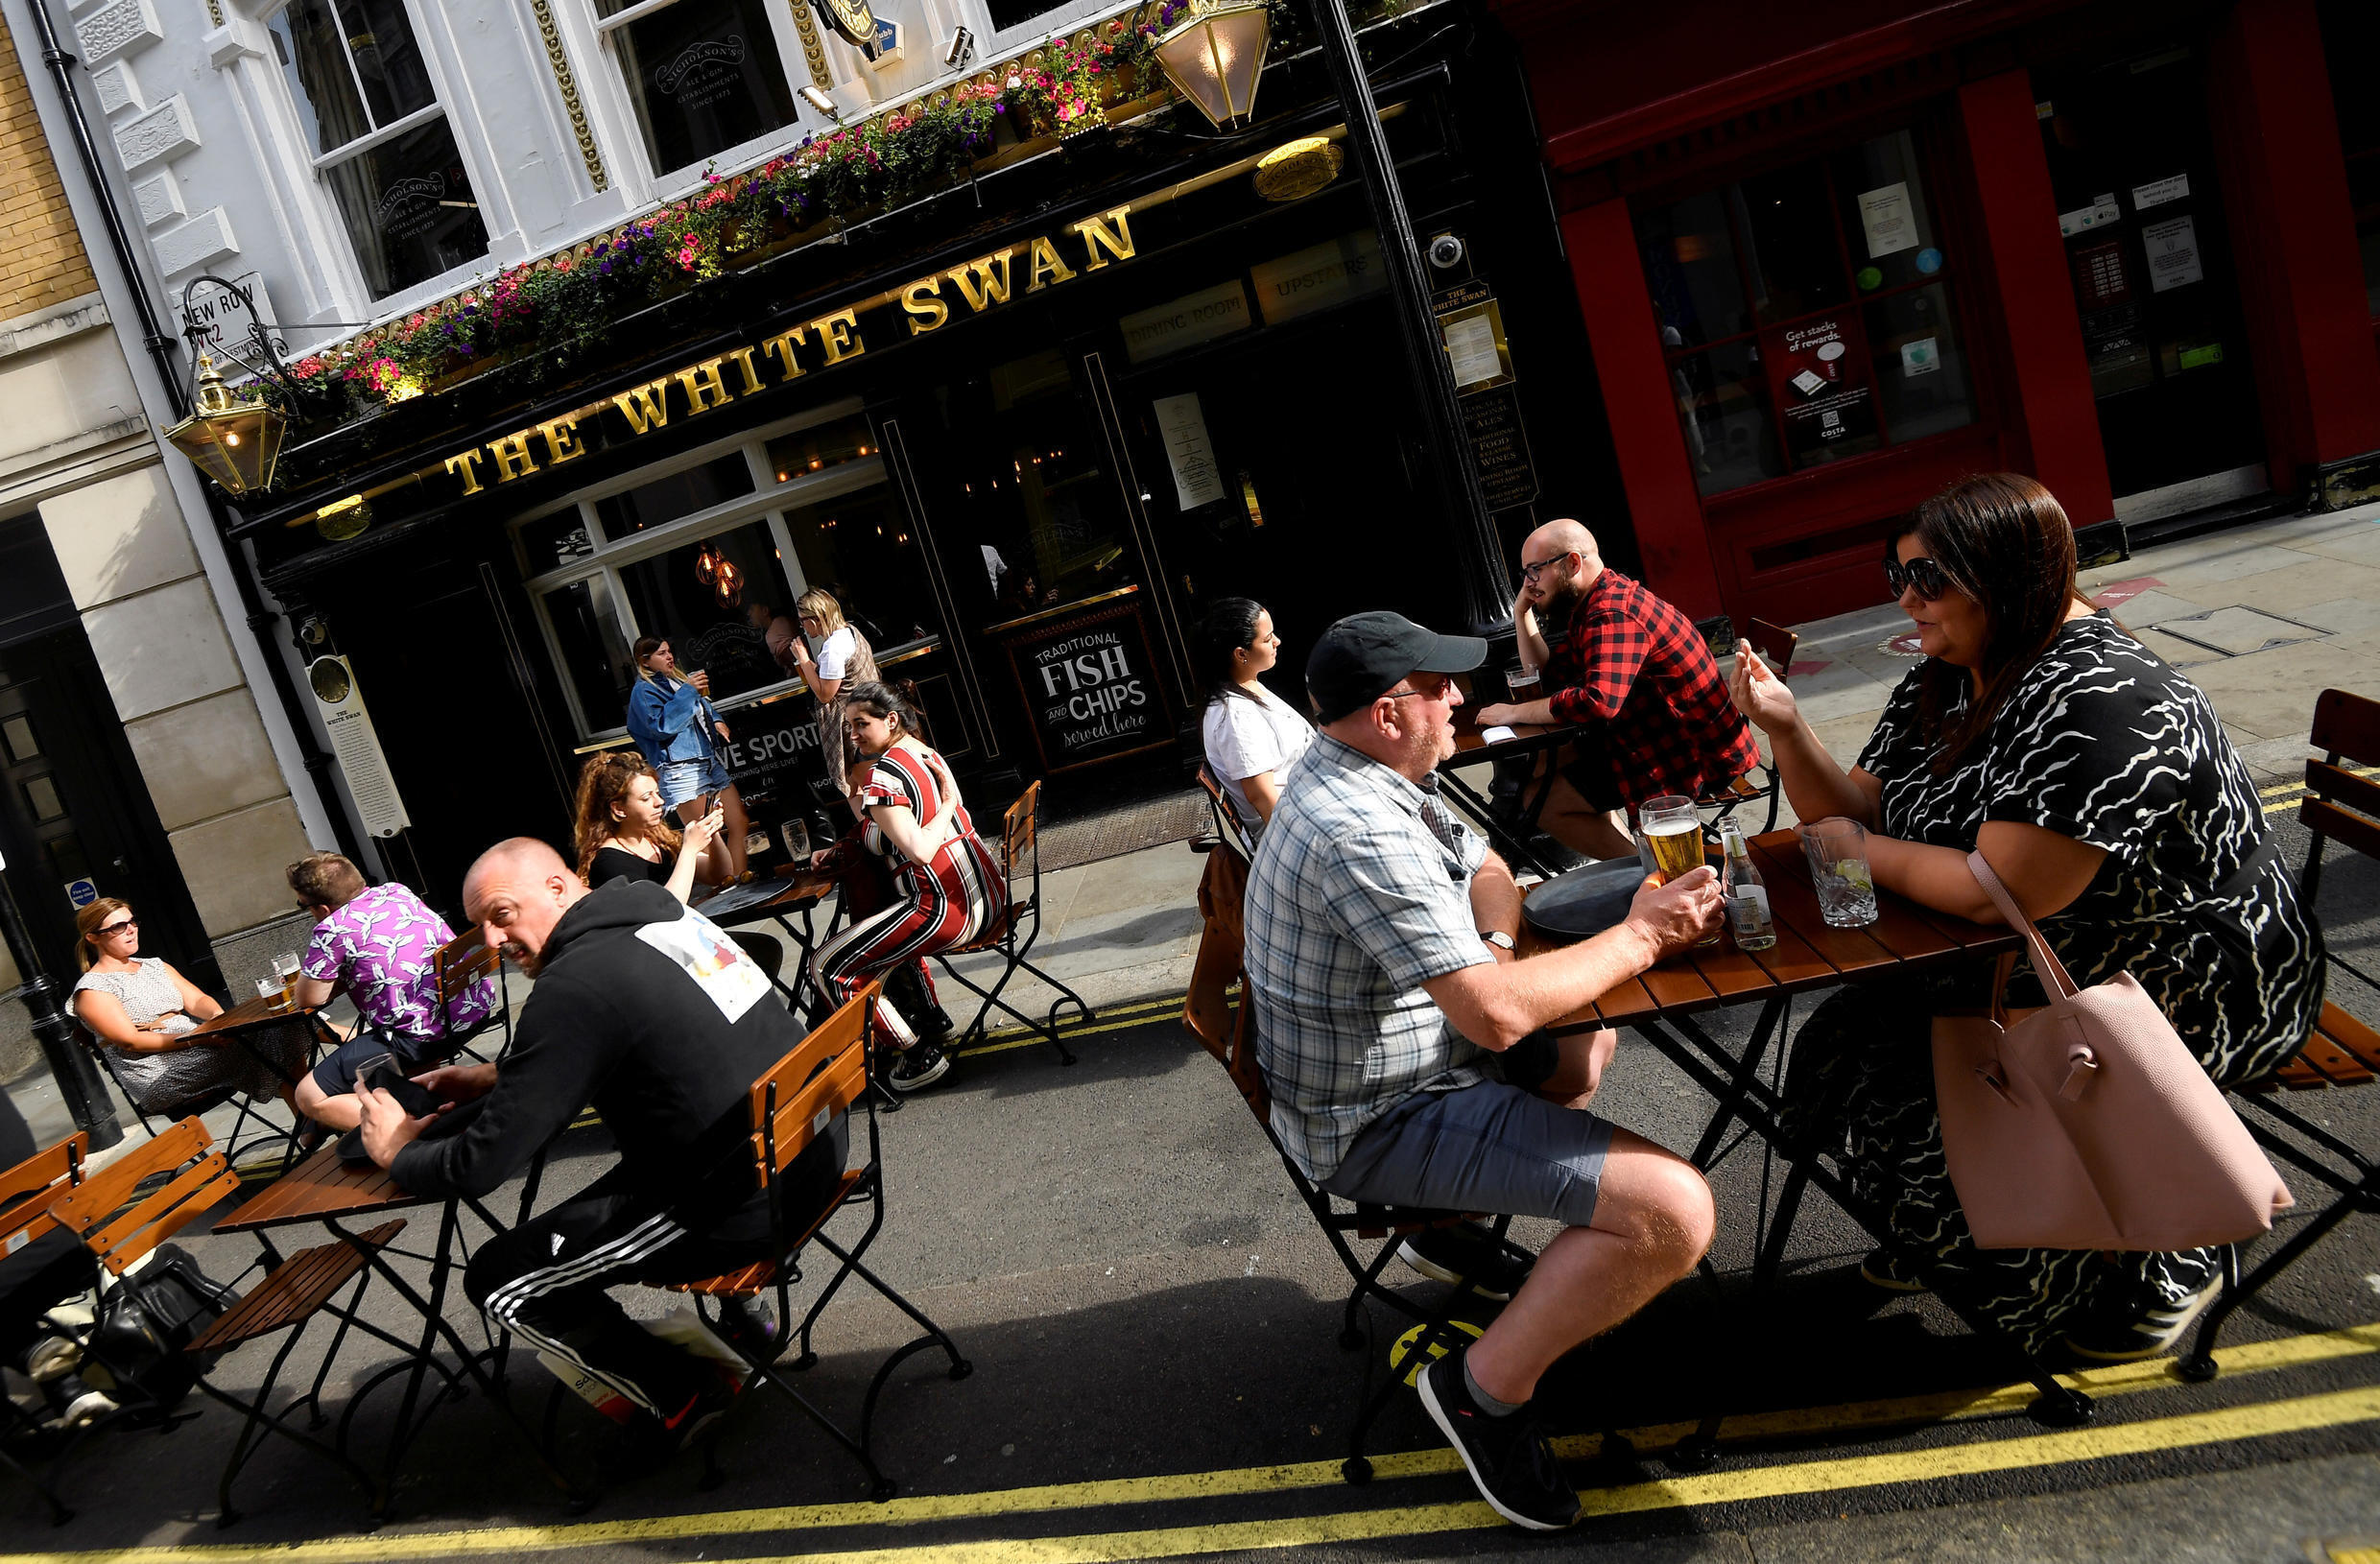 People drink outside a pub at the Covent Garden shopping and dining district, amid the spread of the coronavirus disease (COVID-19), in London, Britain, August 2, 2020.